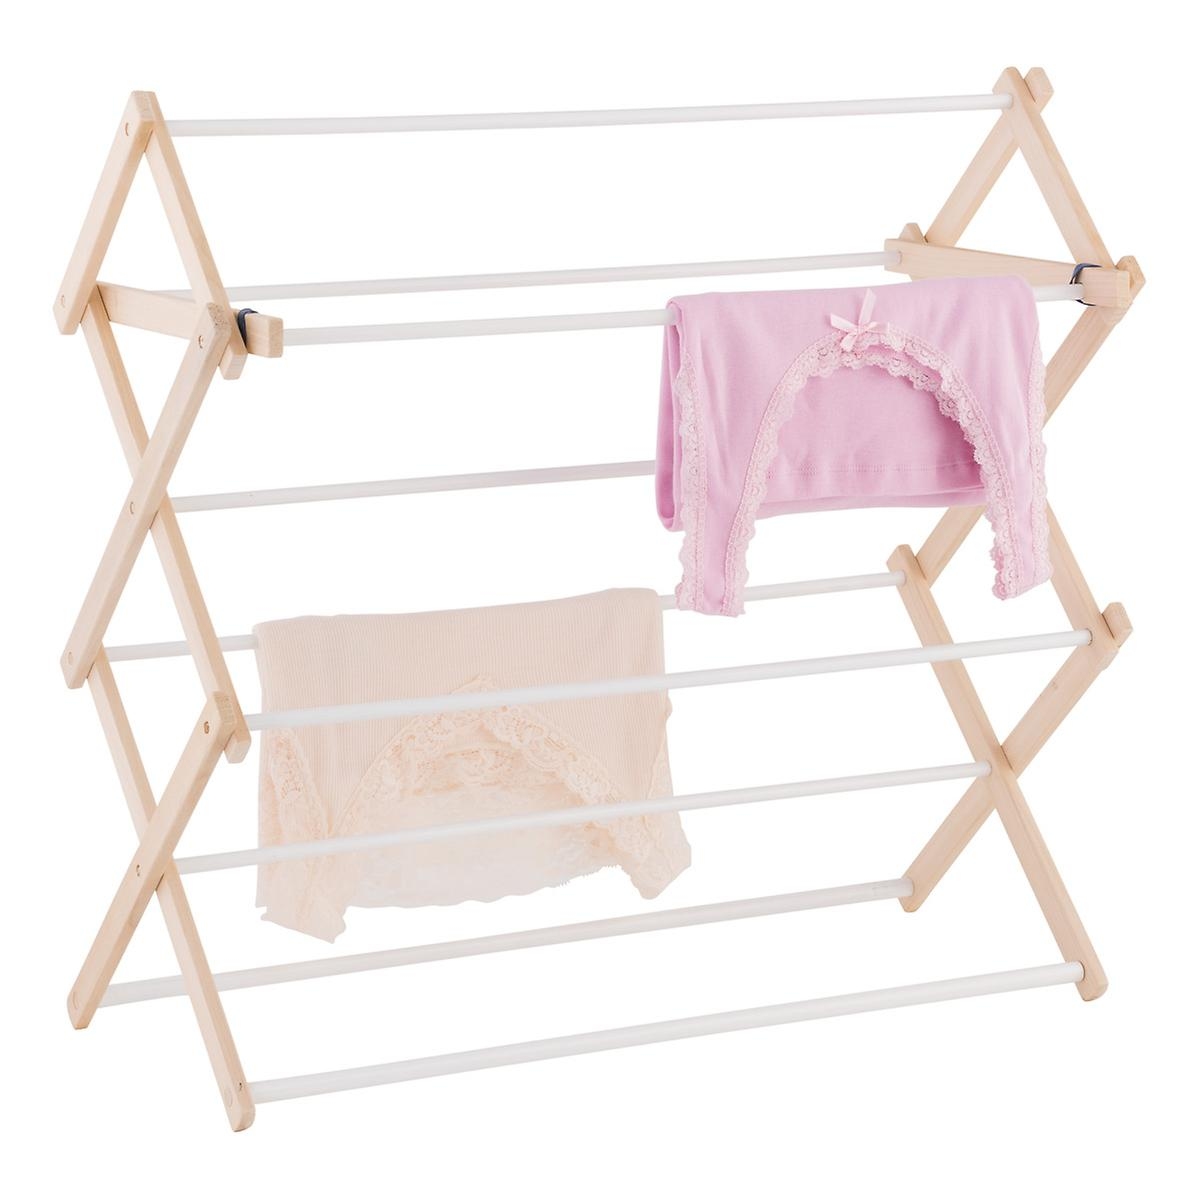 laundry item airer line washing hanging rack cloth towel radiator drying indoor itm clothes specifics